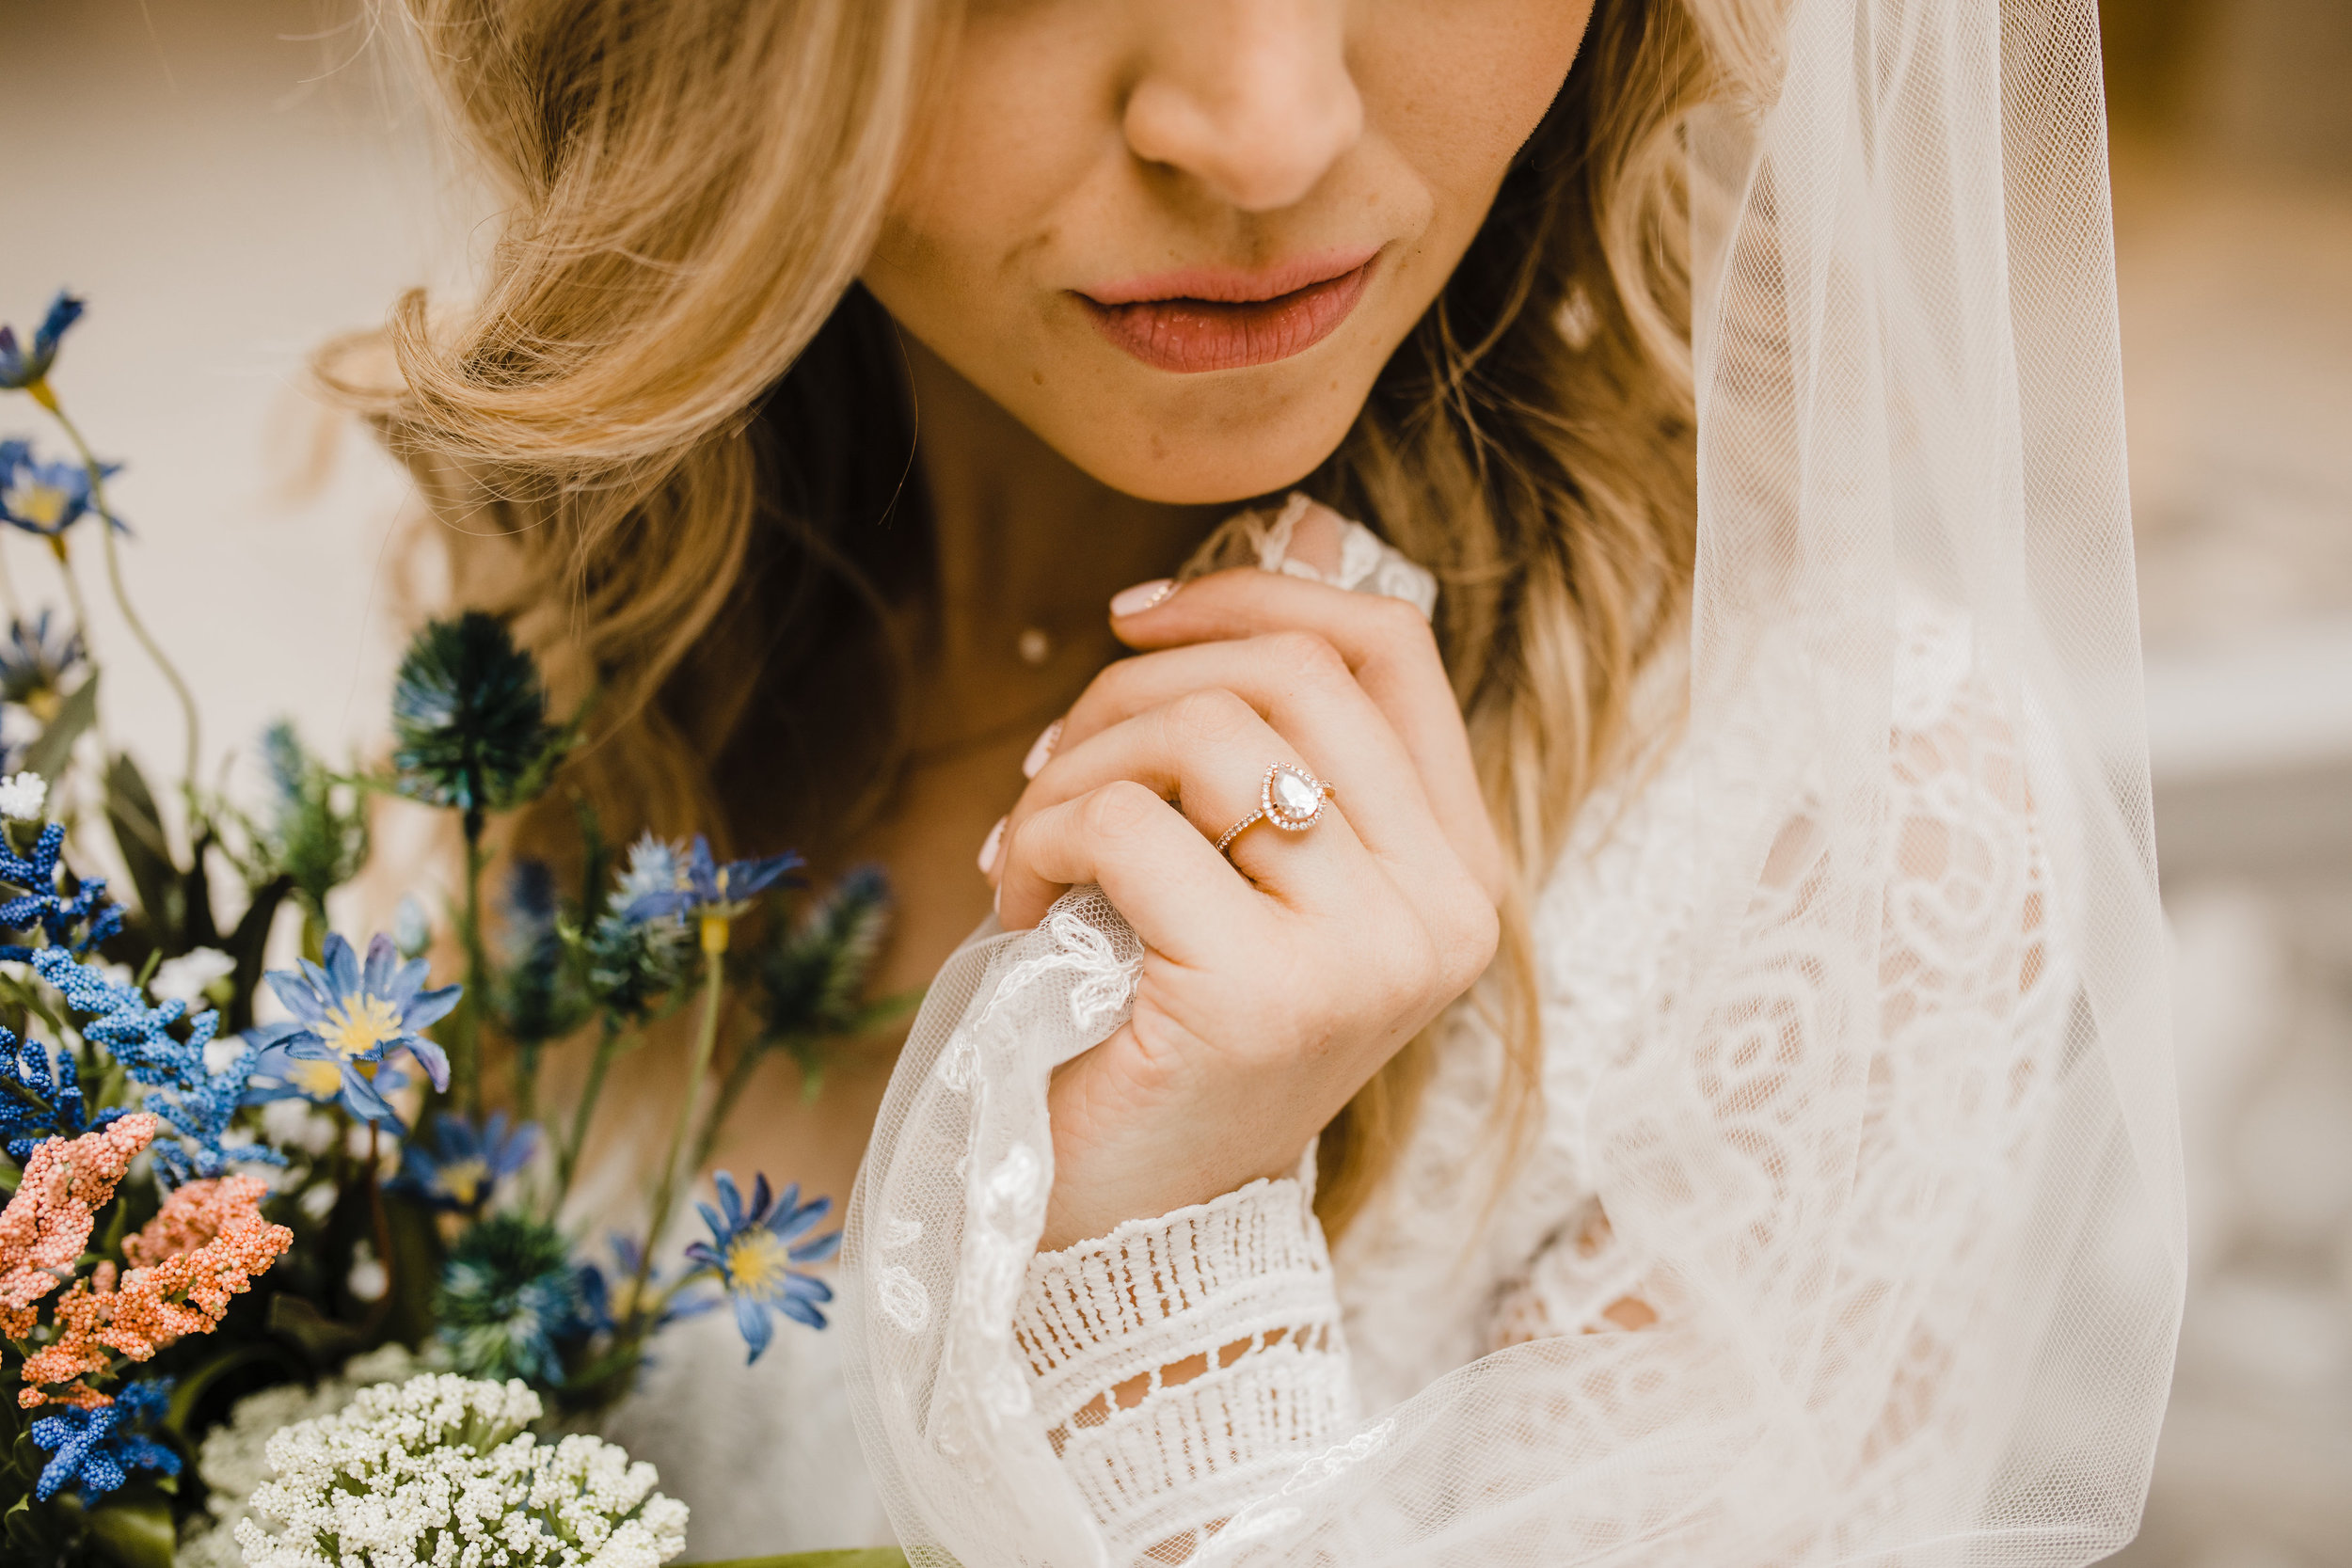 best wedding photographer in westminister colorado wildflower bouquet wedding bridals lace wedding dress delicate lace